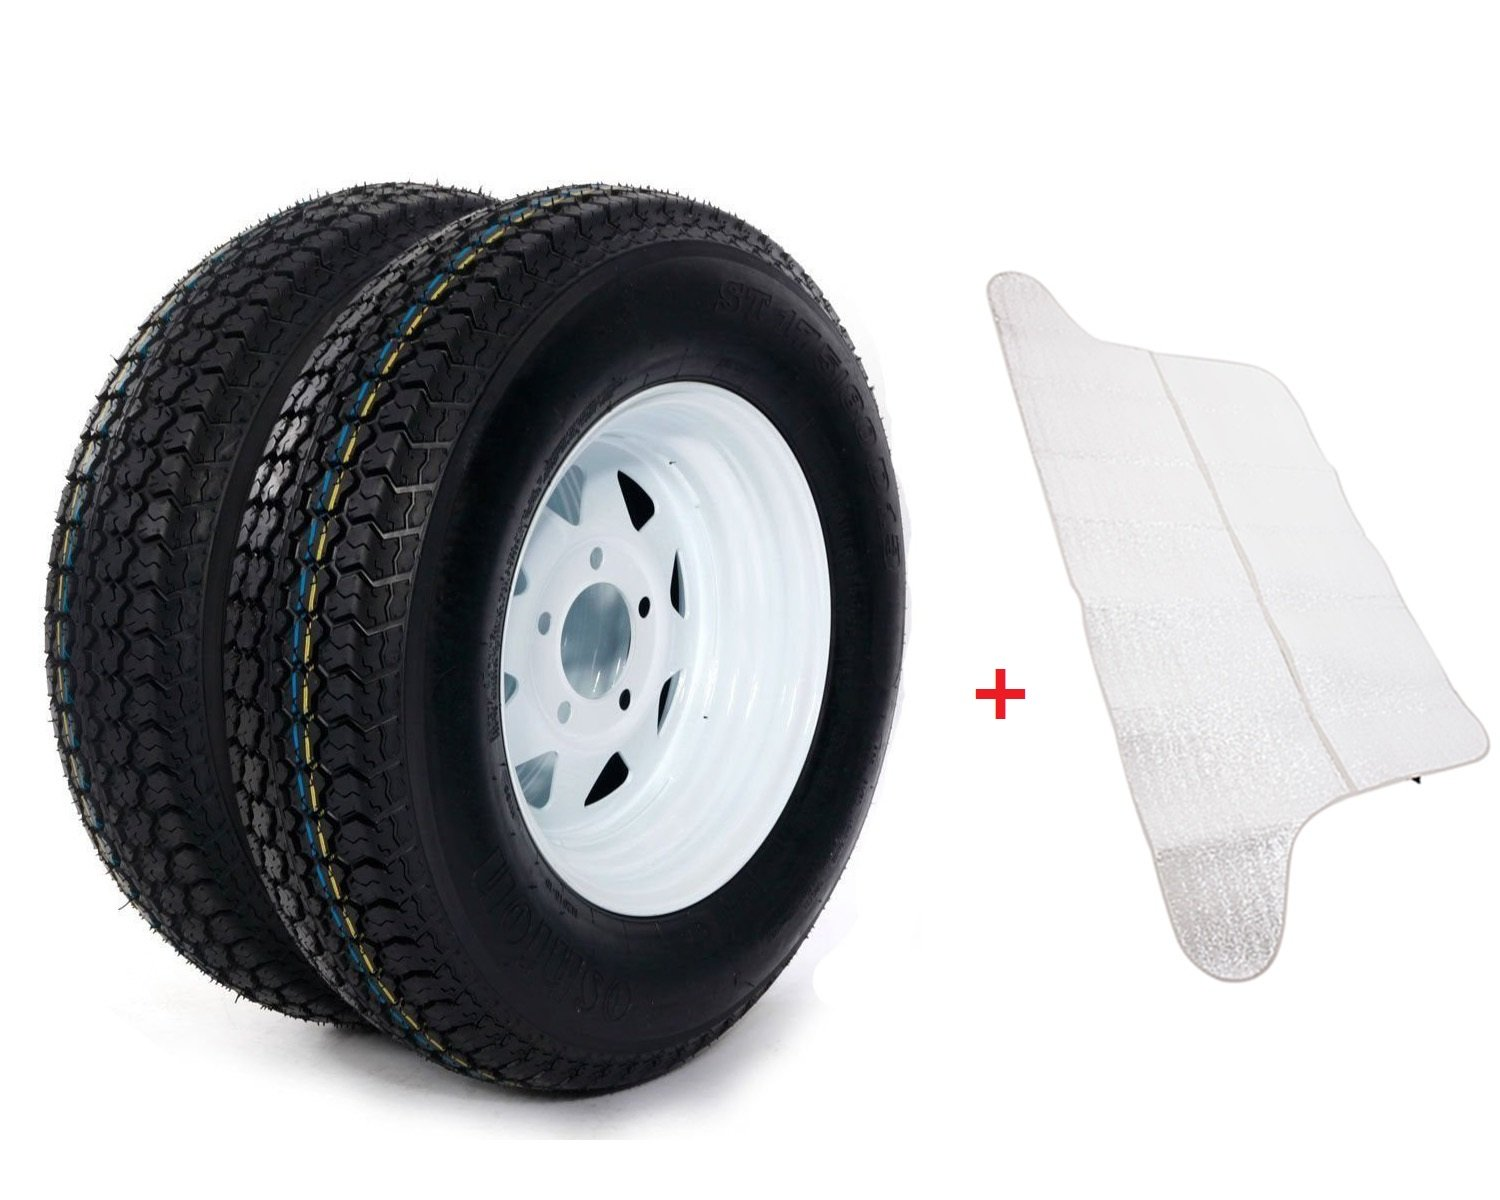 2pc 13'' White Spoke Trailer Wheel with Bias ST175/80D13 Tire Mounted 5x4.5 bolt circle(Come with Car Sunlight Snow Shield Matte Black)